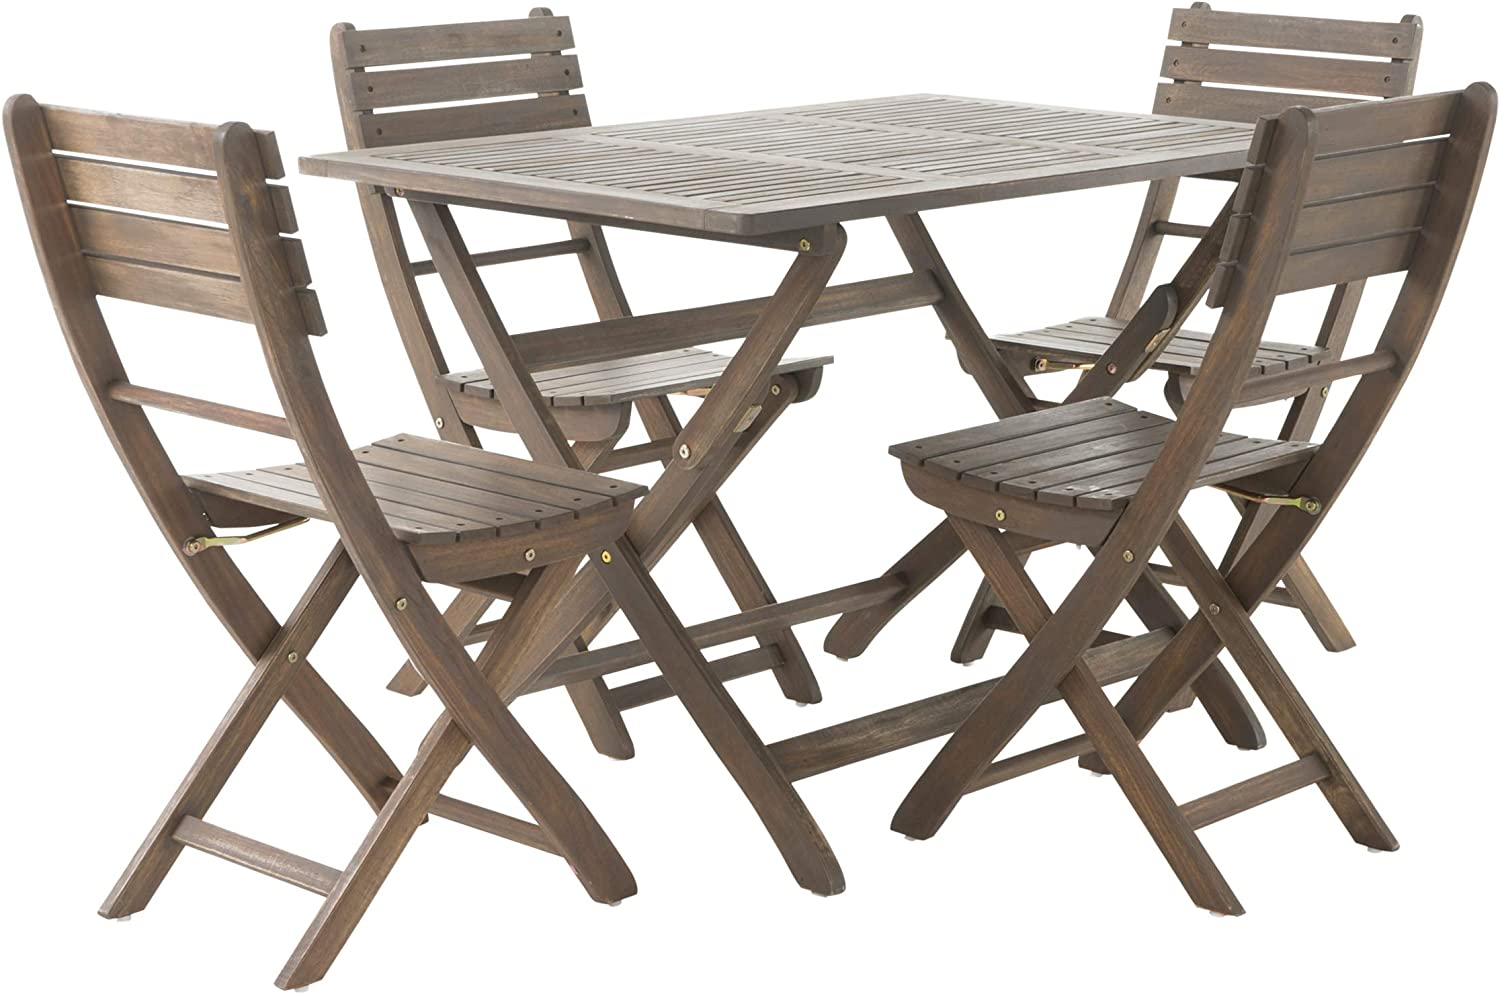 Christopher Knight Home 299808 Vicaro 5 Piece Wood Outdoor Dining Set Perfect for Patio in Grey